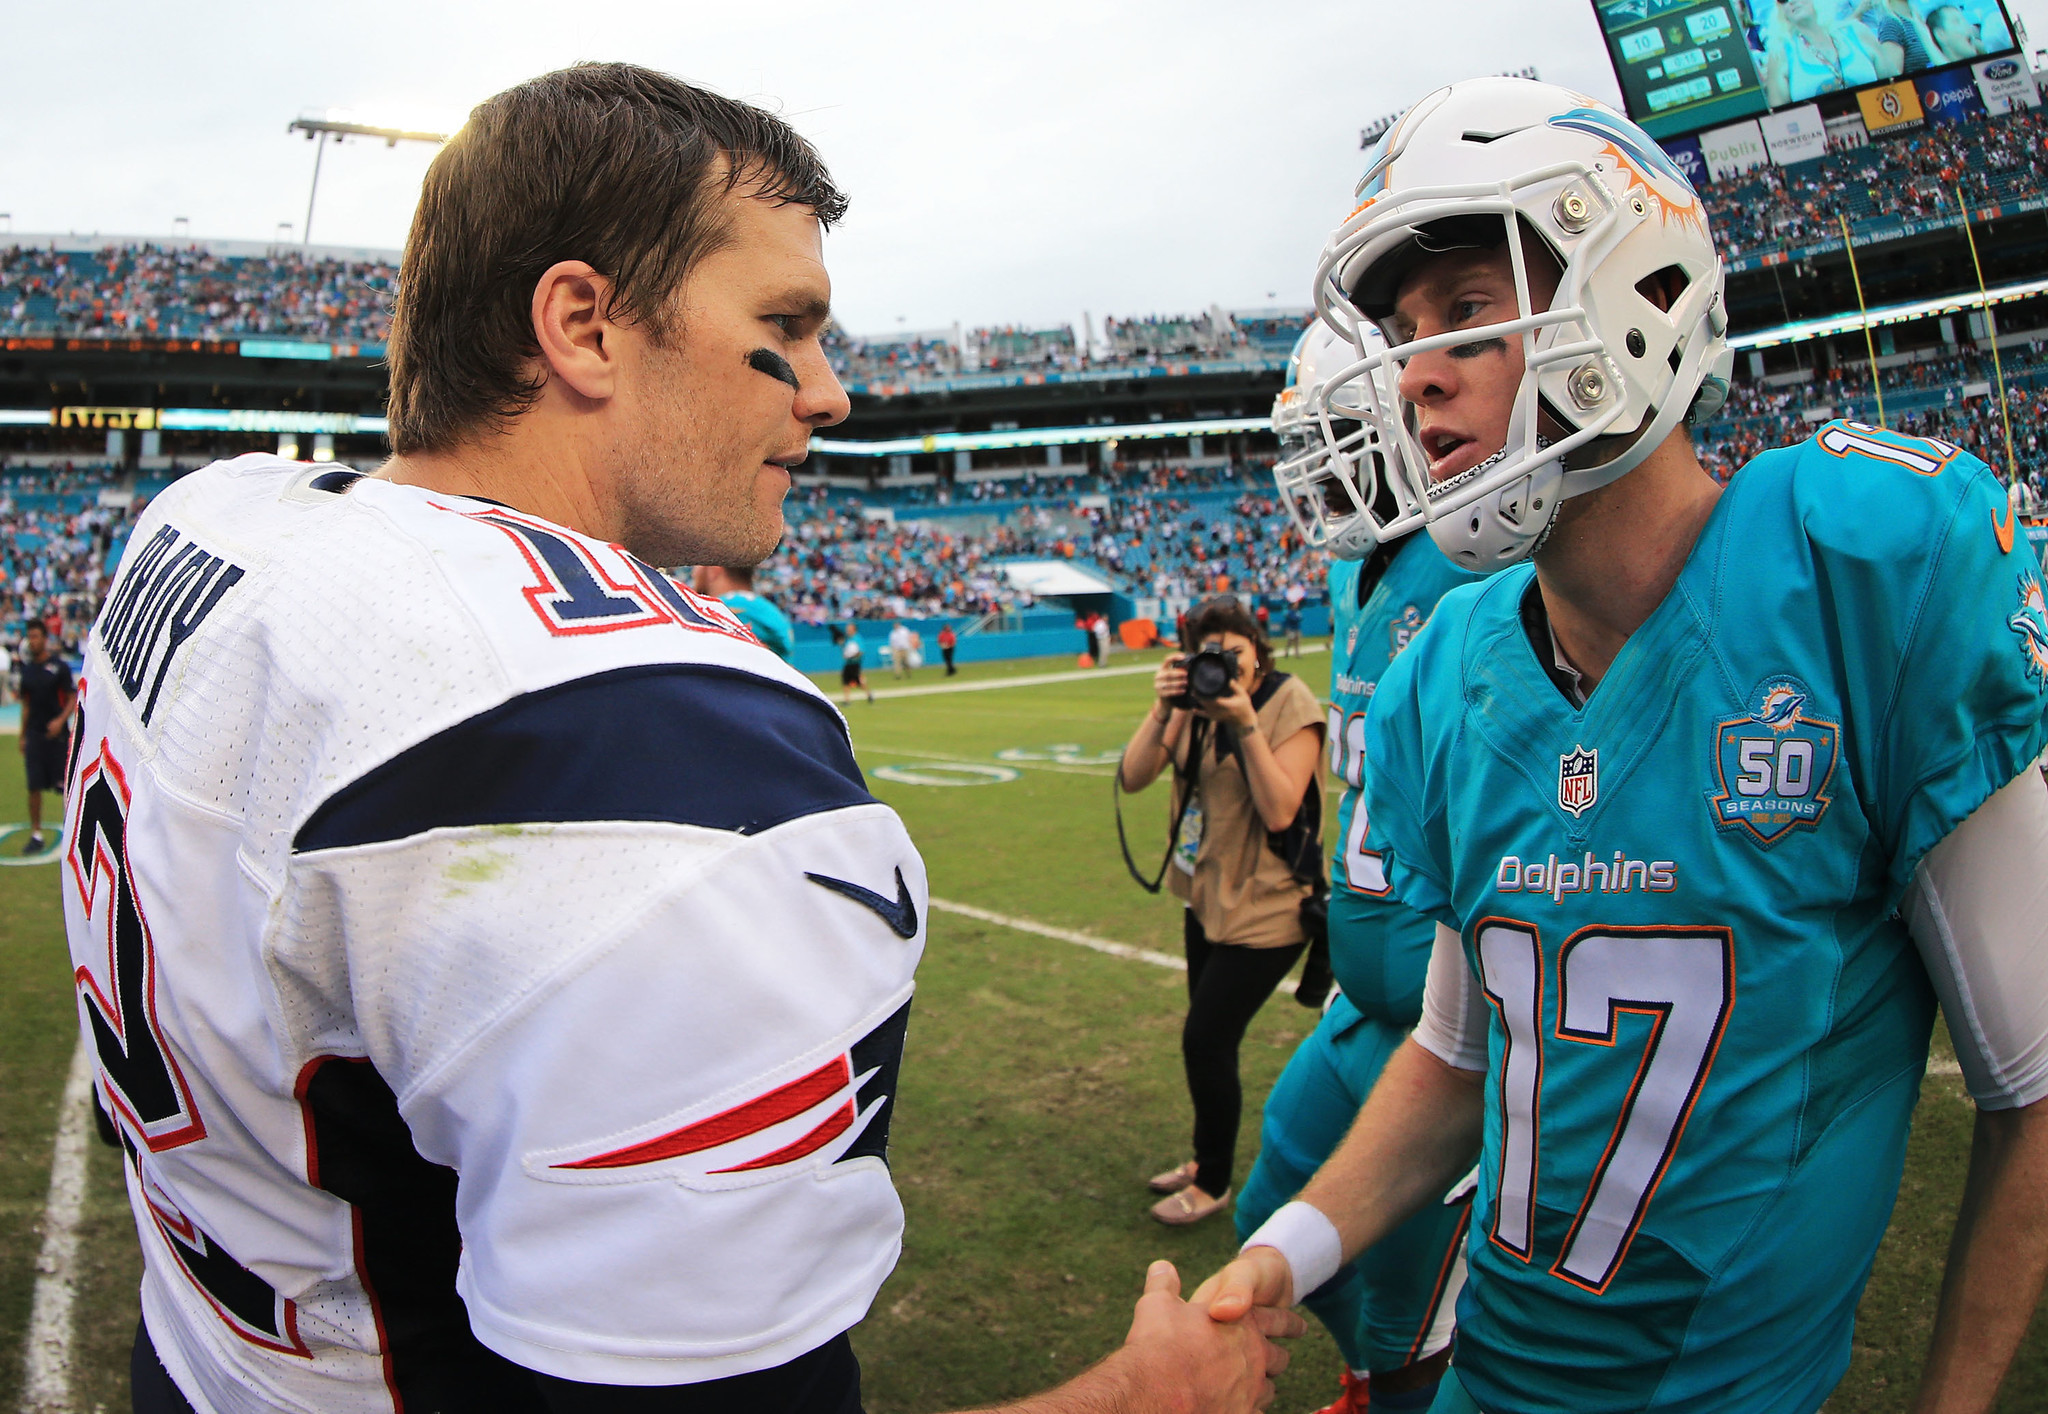 Sfl-dolphins-special-section-perkins-afc-east-20160827